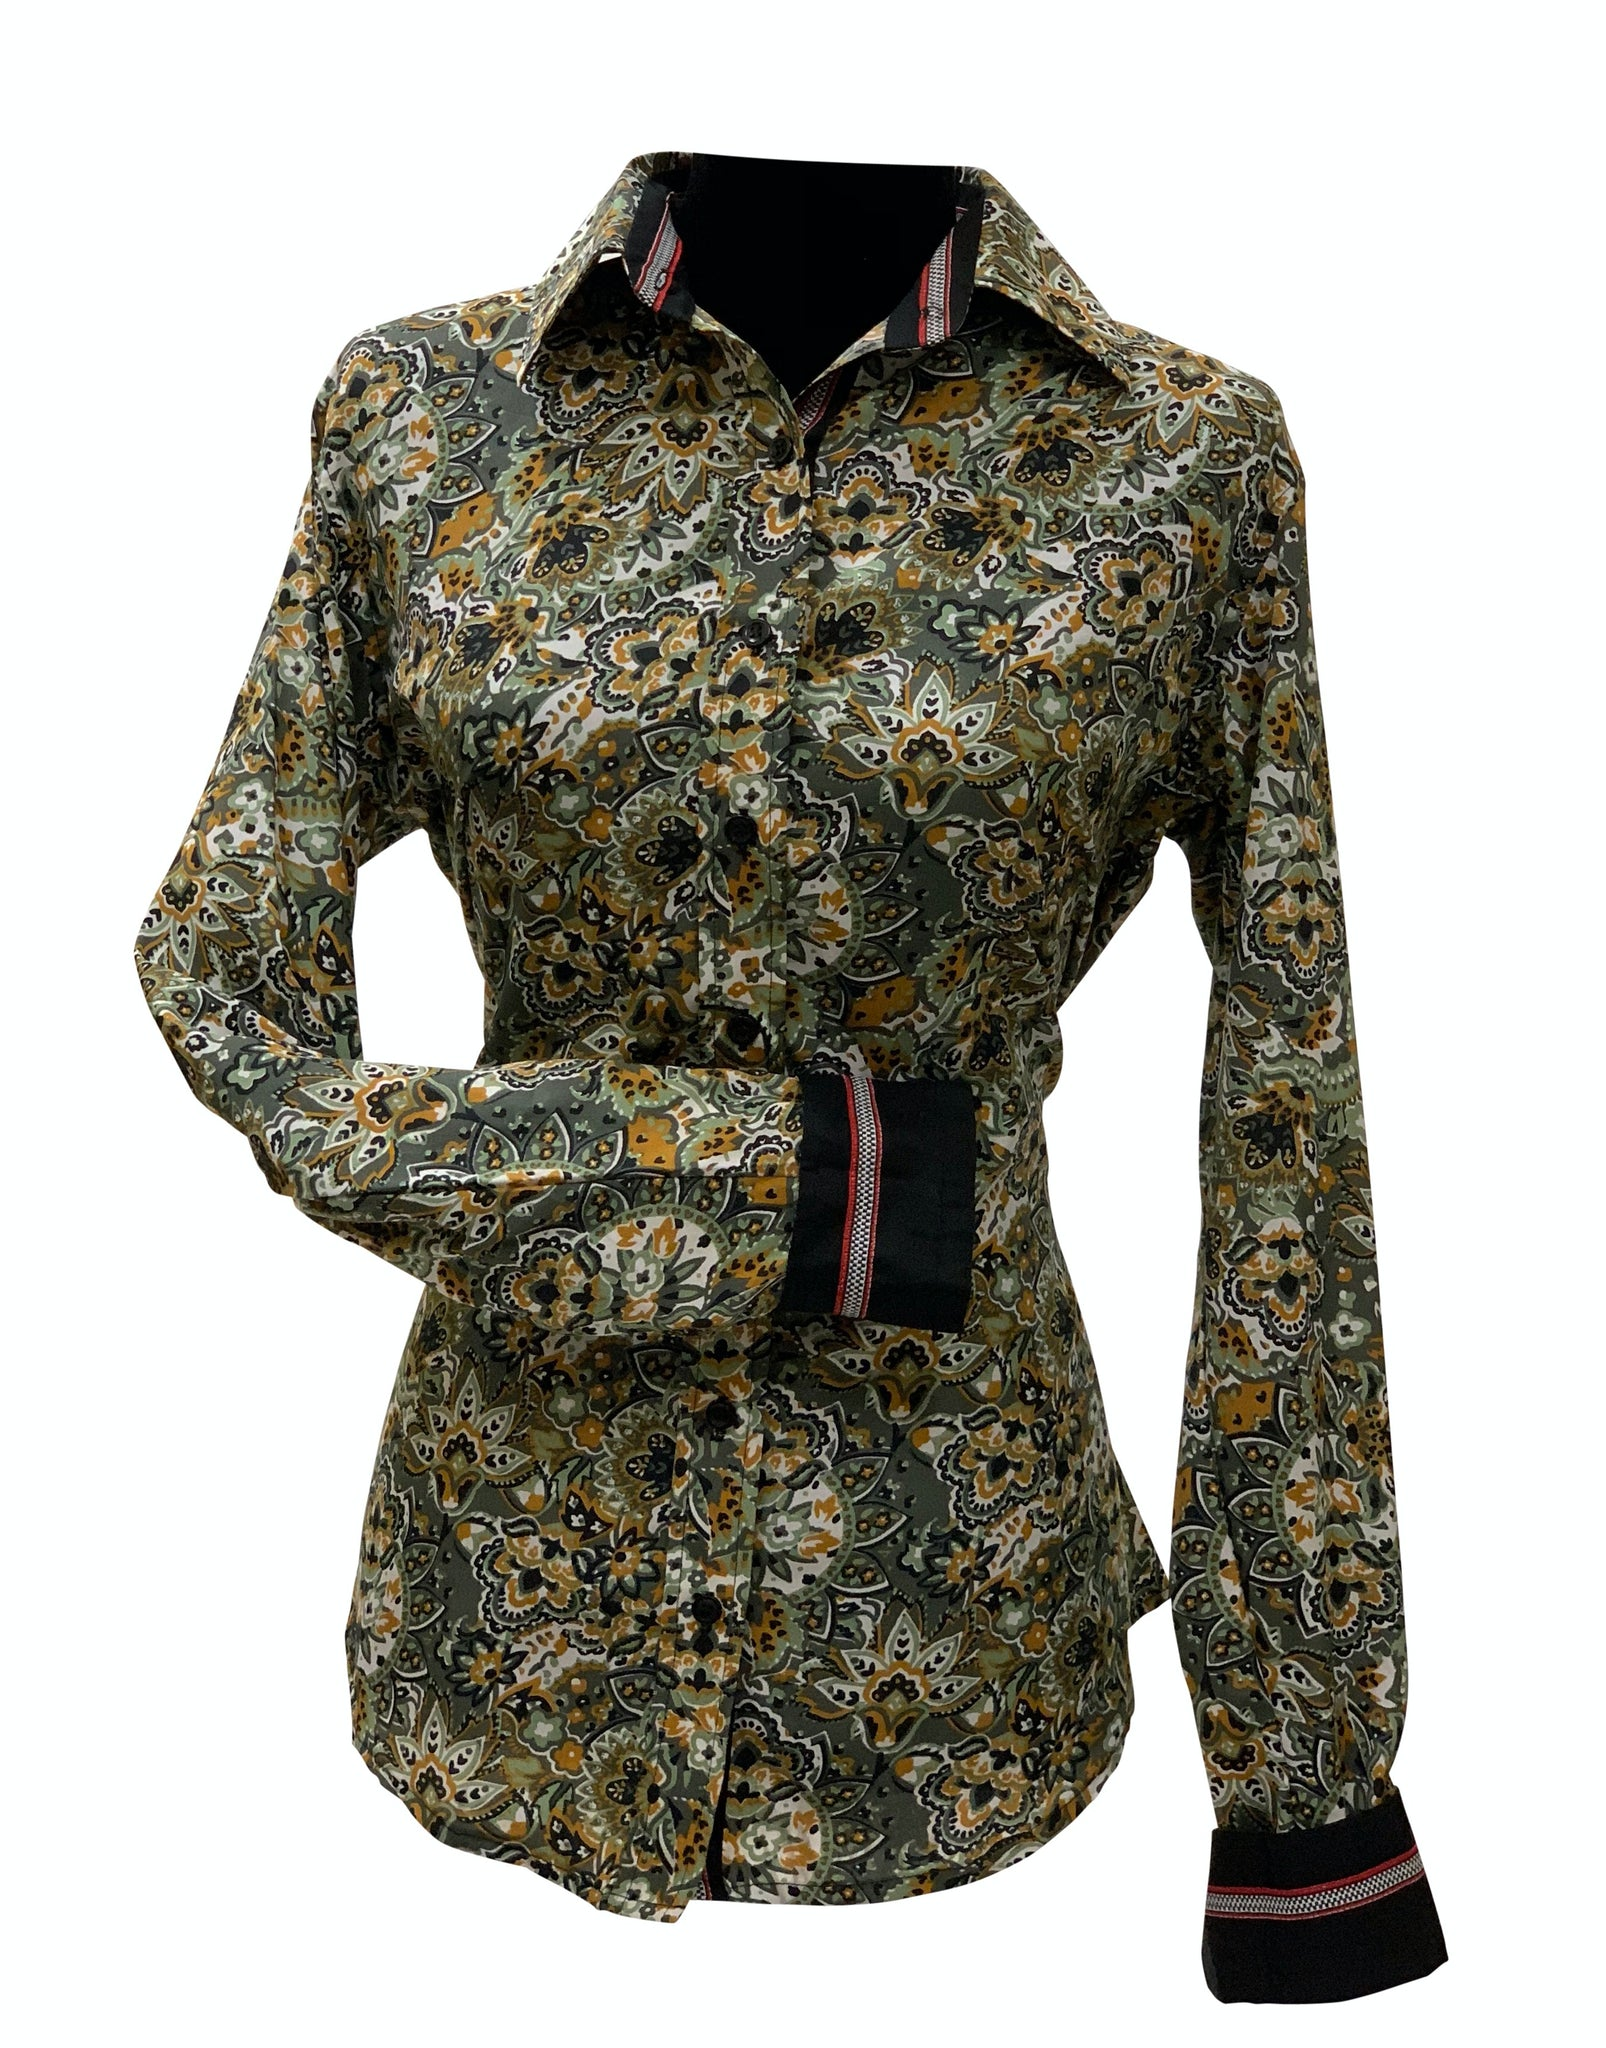 A Printed Fitted Button Down - Olive Floral